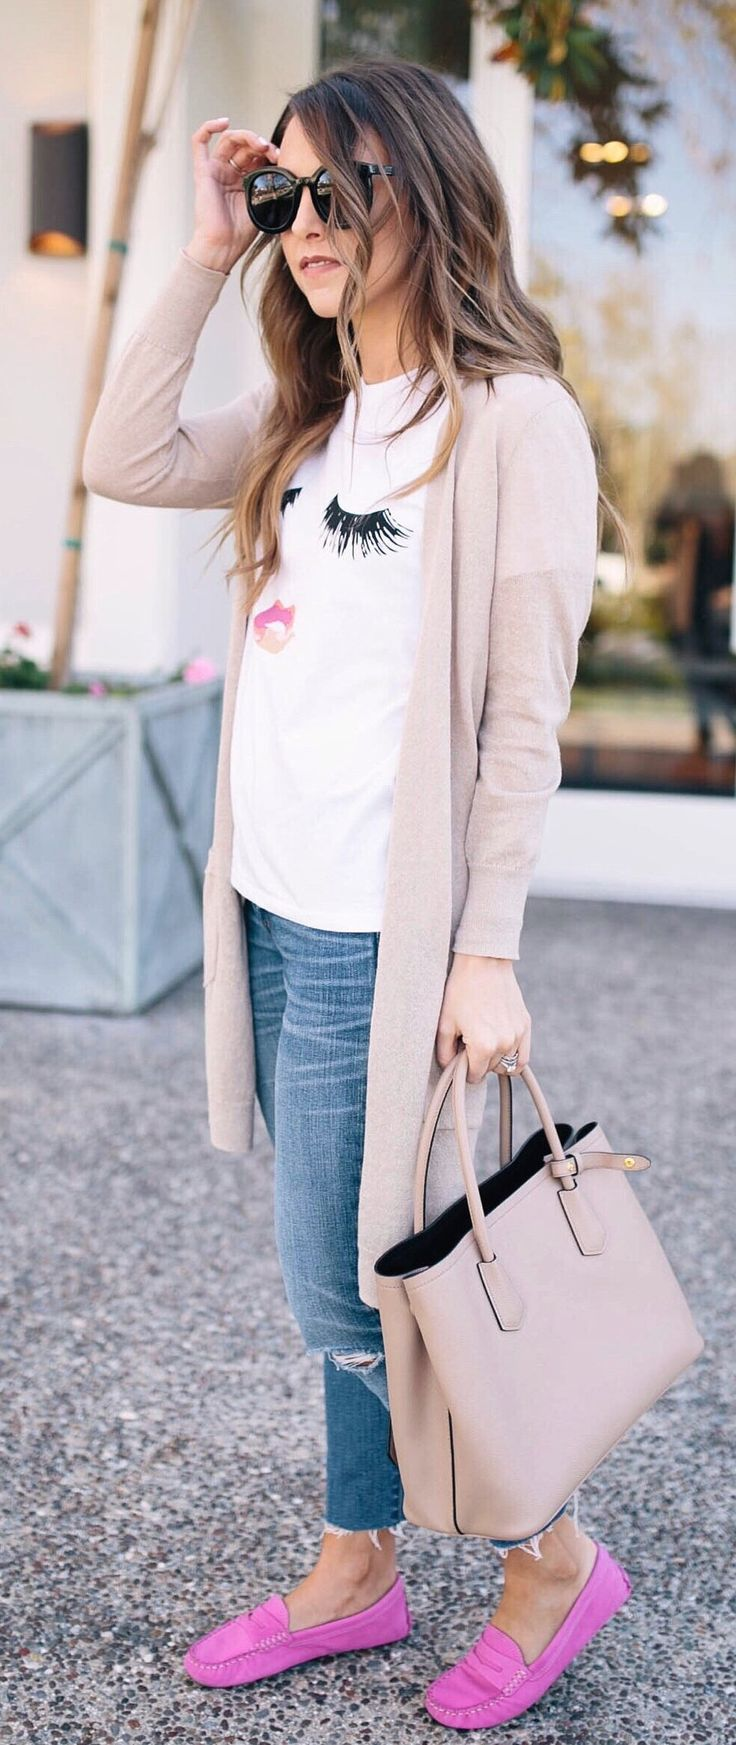 Beige Maxi Cardigan & White Printed Tee & Beige Leather Tote Bag & Pink Loafers & Ripped Skinny Jeans